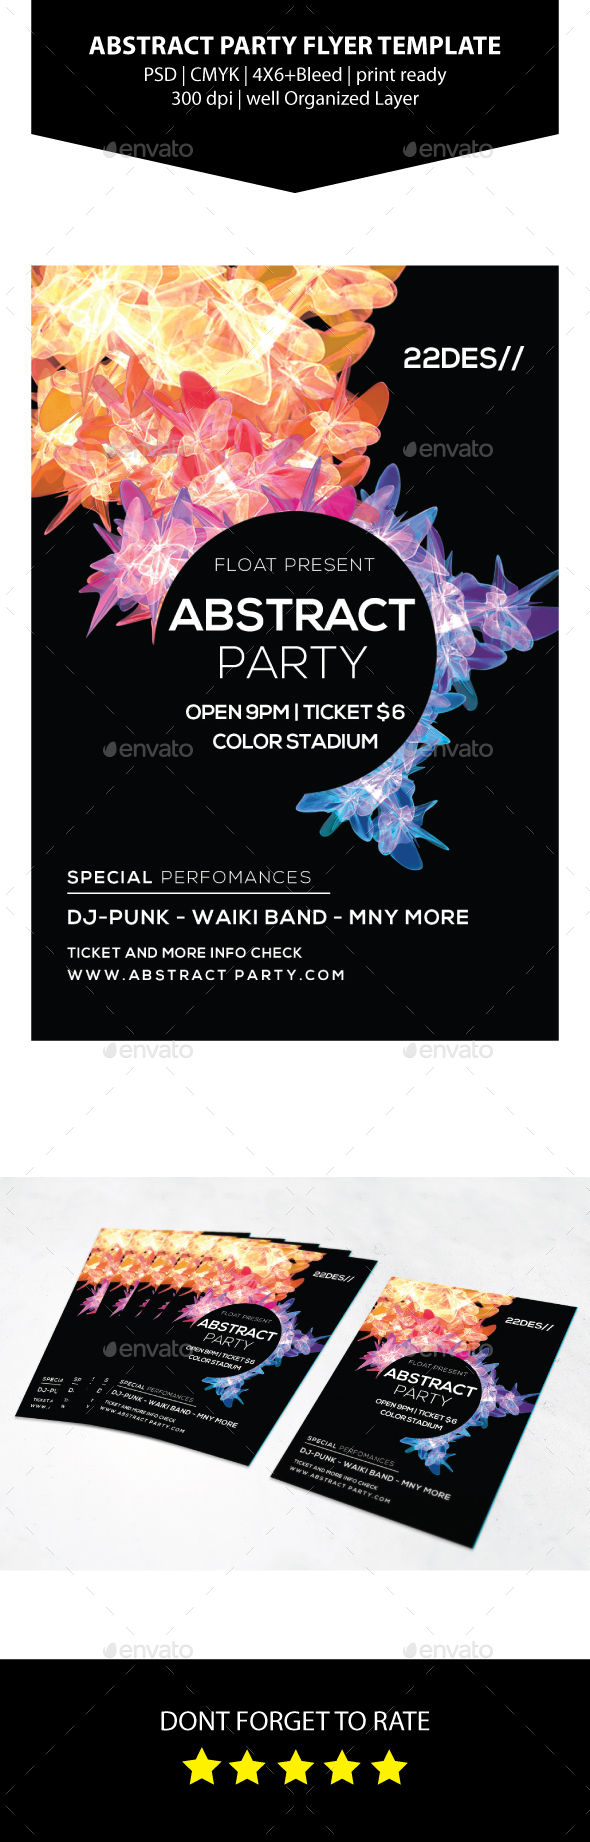 Abstract Party Flyer Template - Events Flyers